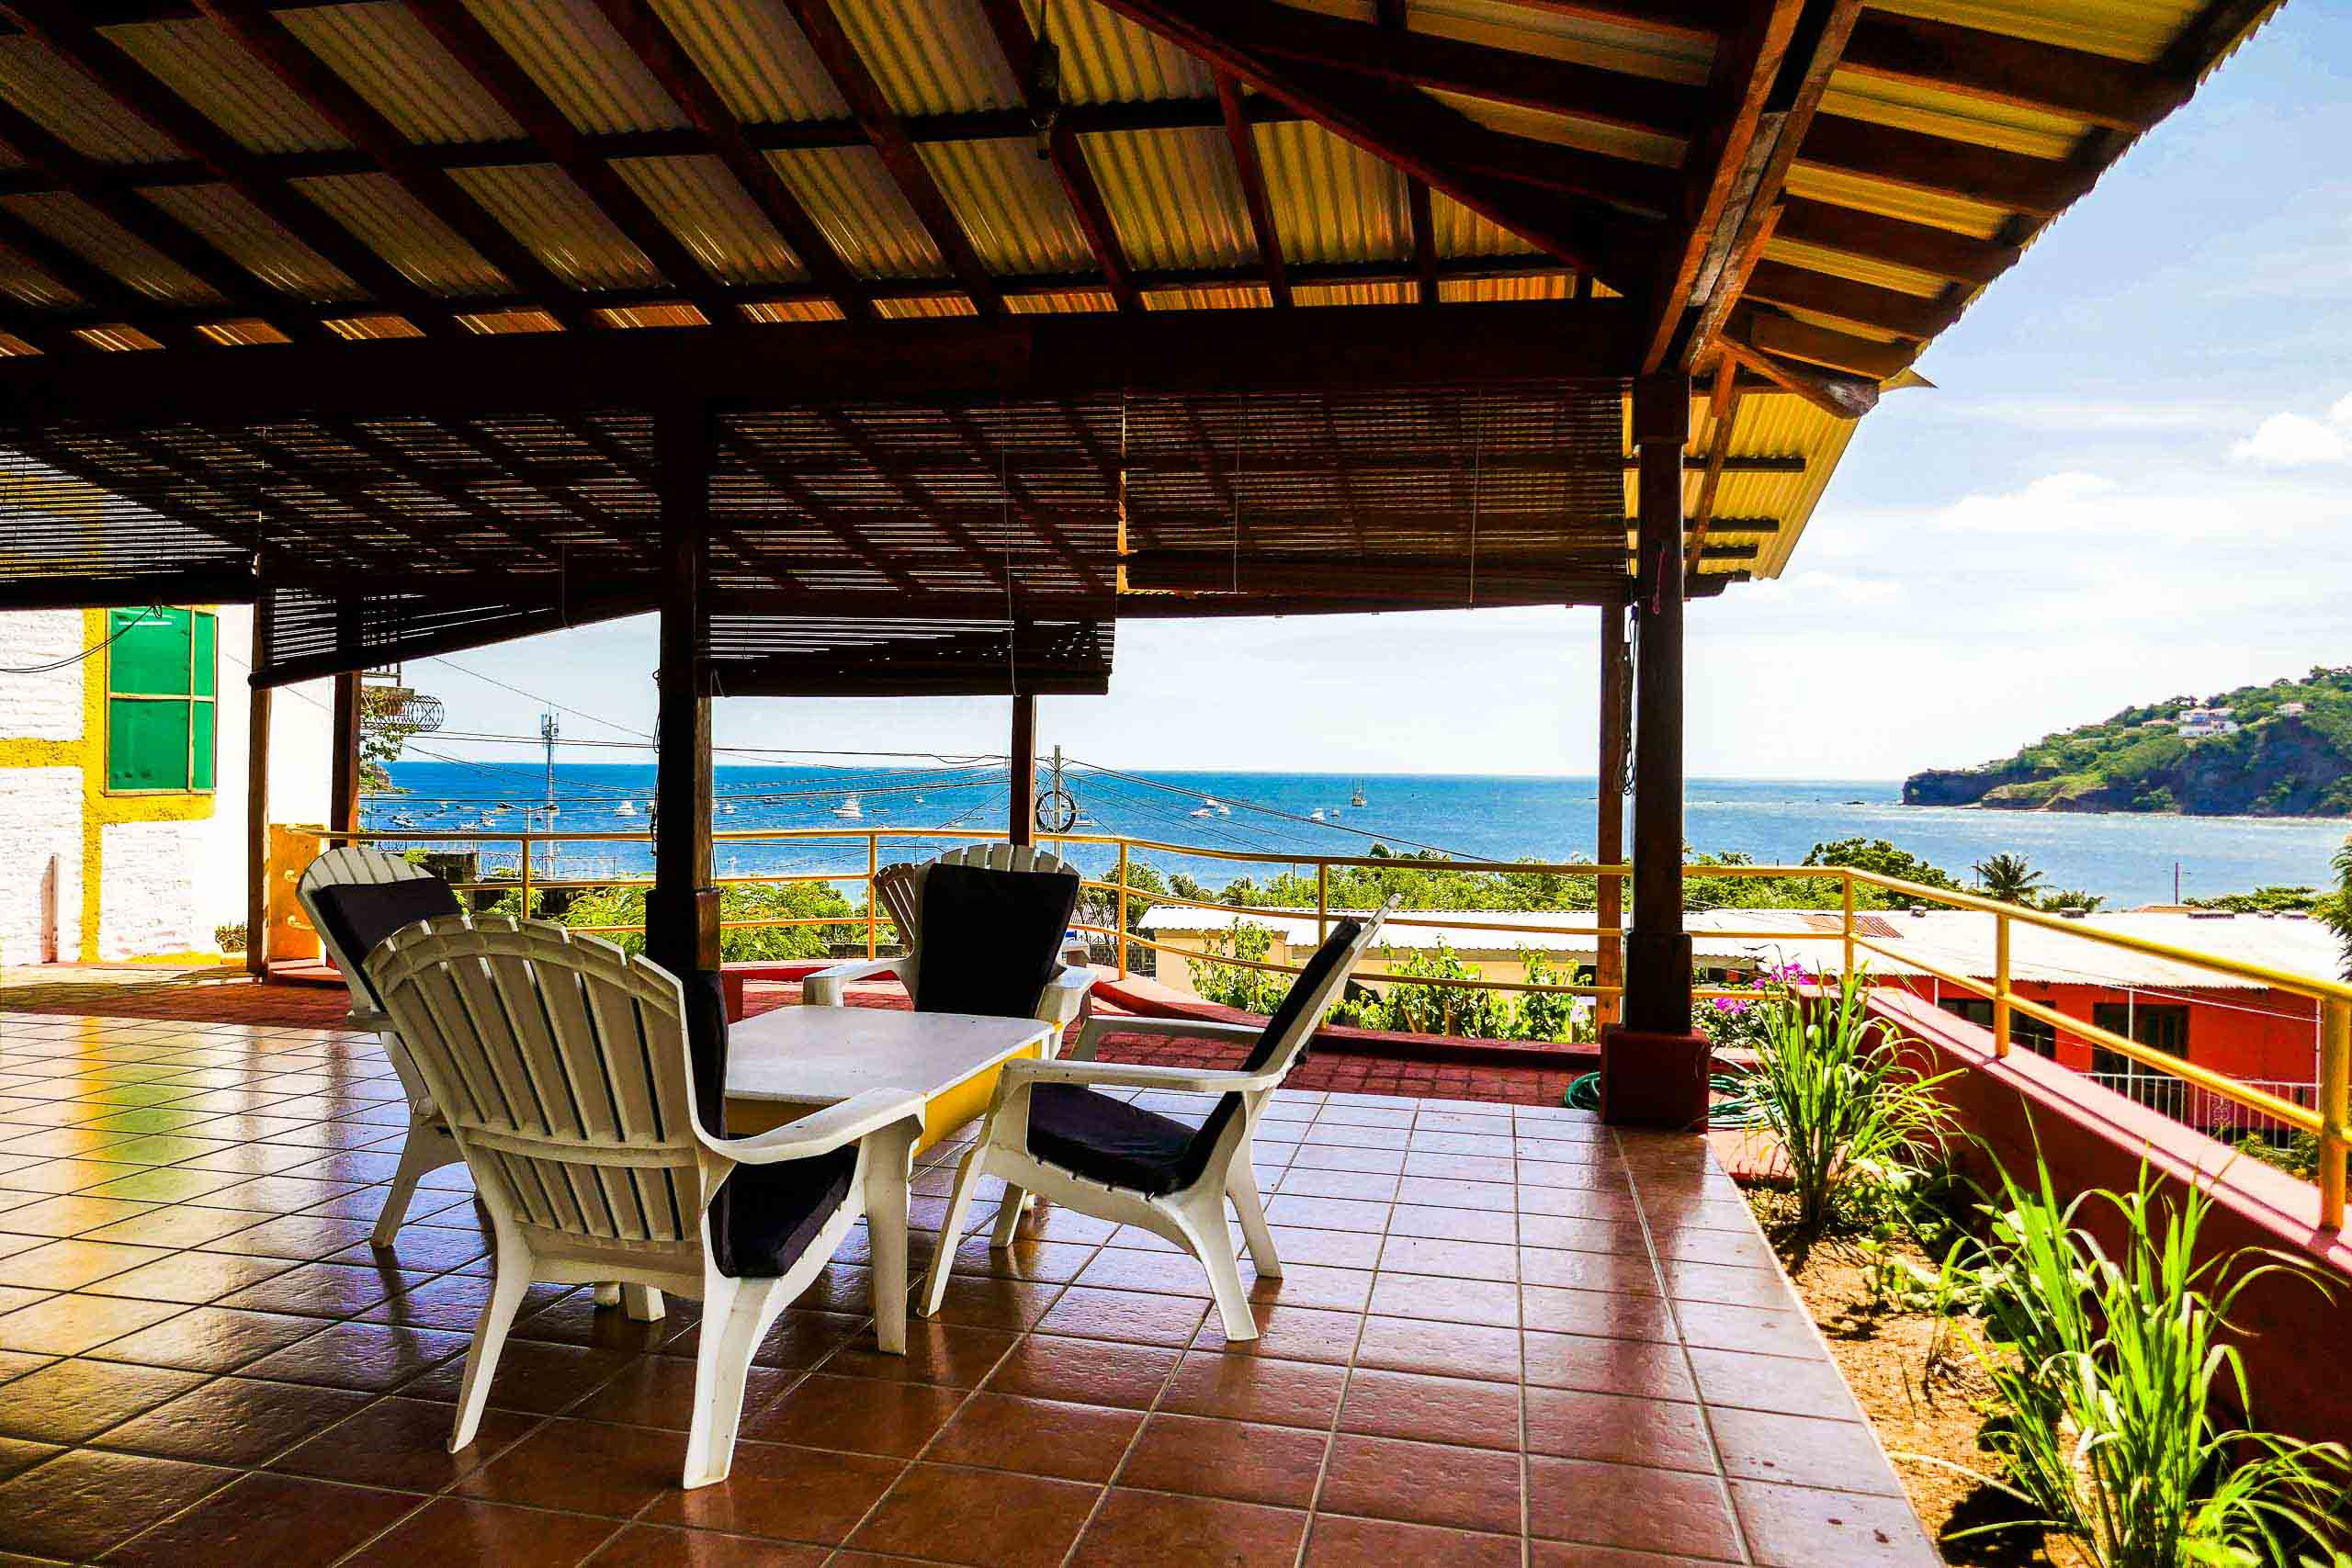 Casa Oro Group Casa-Ruth-Ocean-View-San-Juan-Del-Sur-Nicaragua-Eco-Tourism-Remodel-Patio-Group-Travel-Family Accommodations